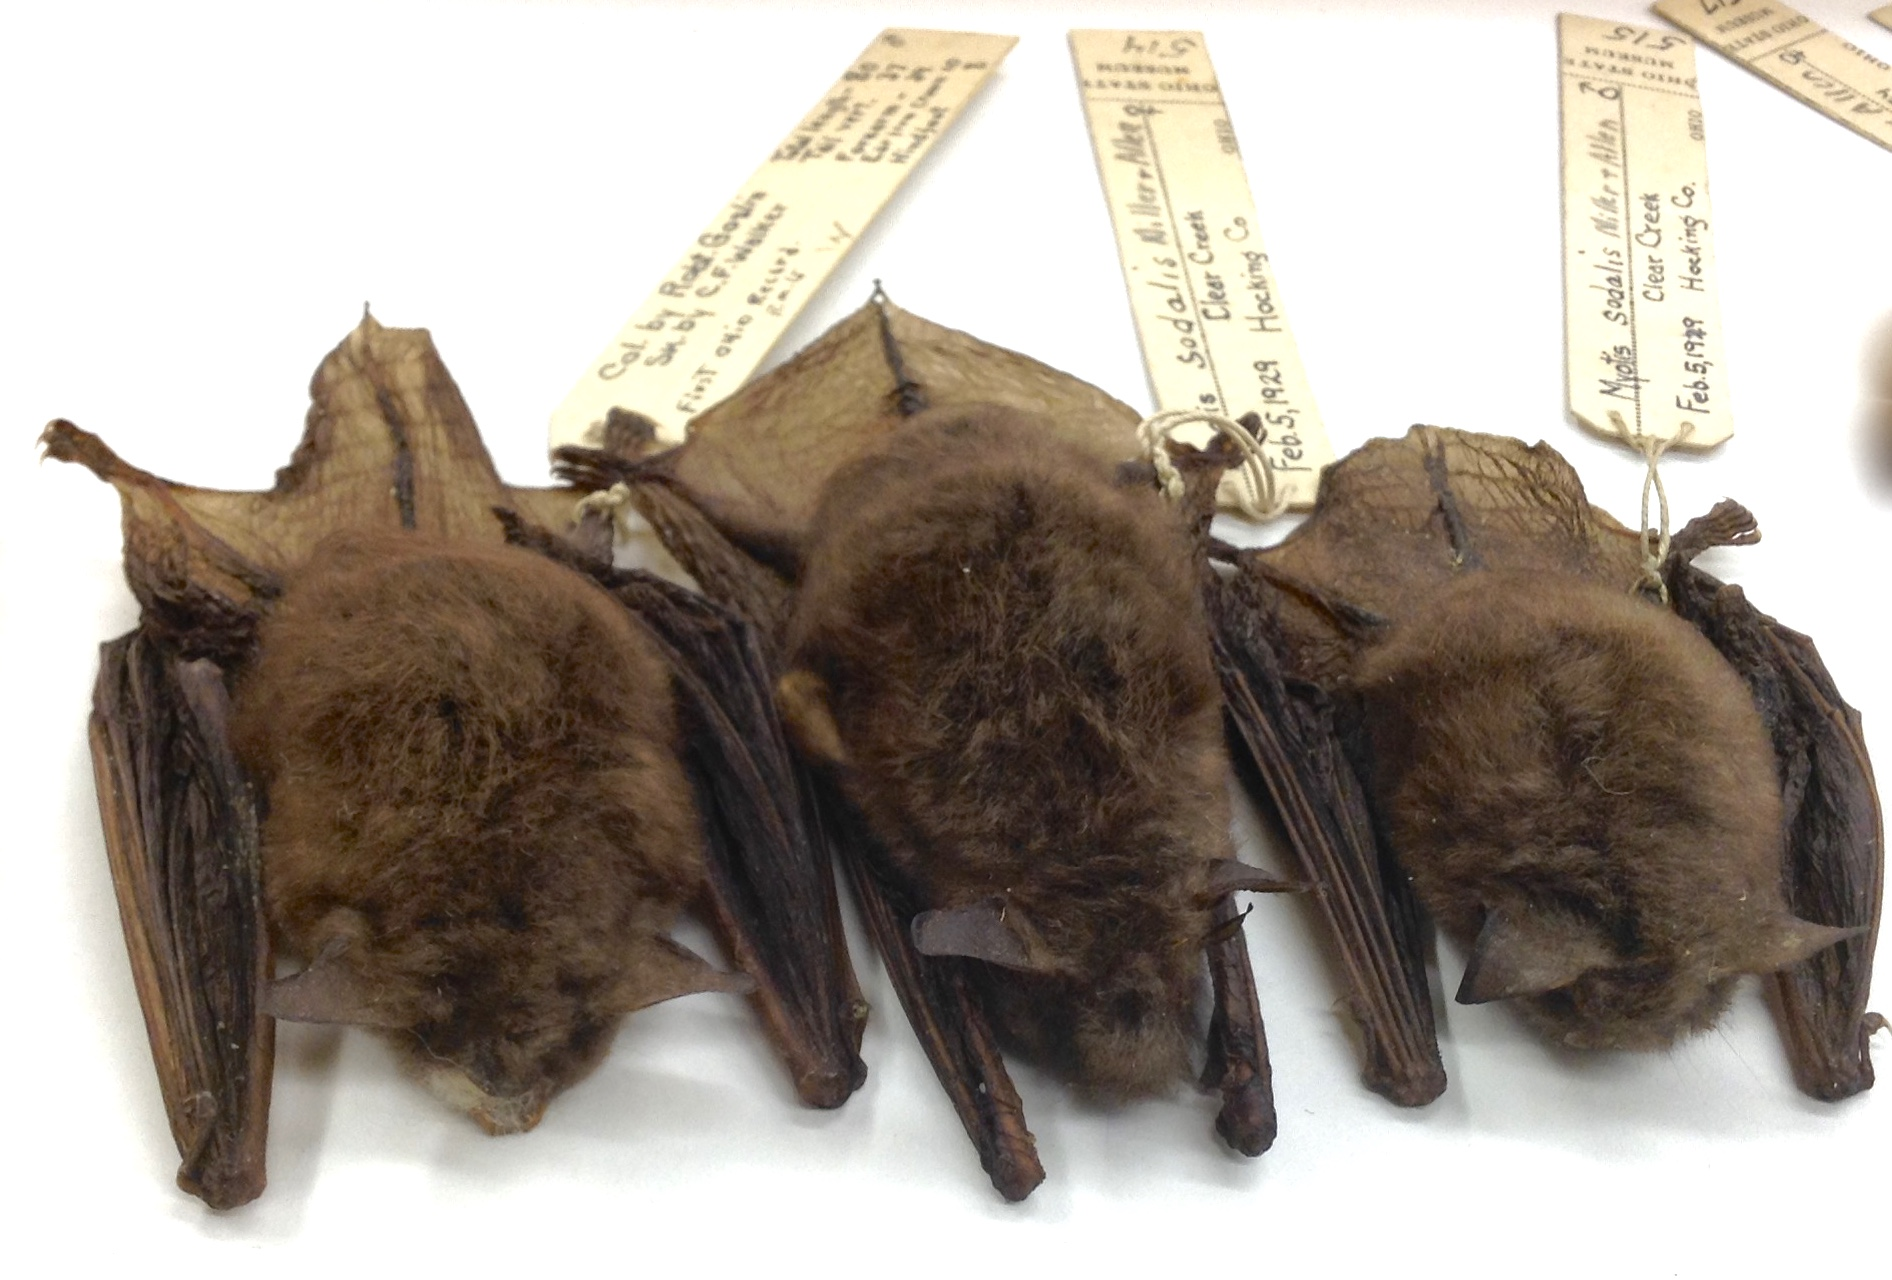 Bat skins from the Tetrapod Collection.